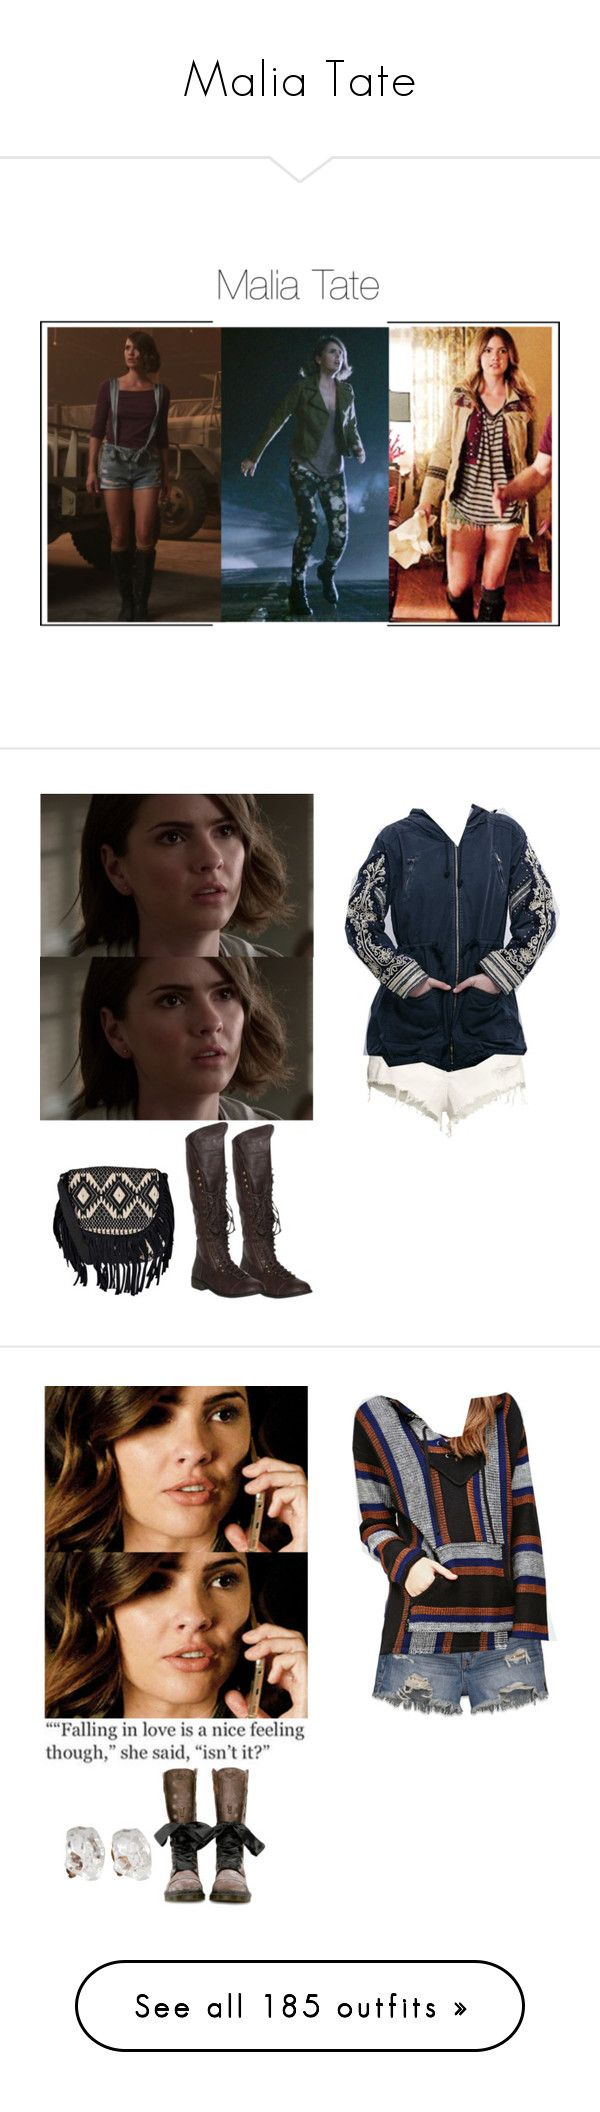 """""""Malia Tate"""" by shadyannon ❤ liked on Polyvore featuring Boohoo, H&M, Free People, Abercrombie & Fitch, Forever 21, Dr. Martens, Kate Spade, Rocket Dog, Miss Selfridge and Sun & Shadow"""